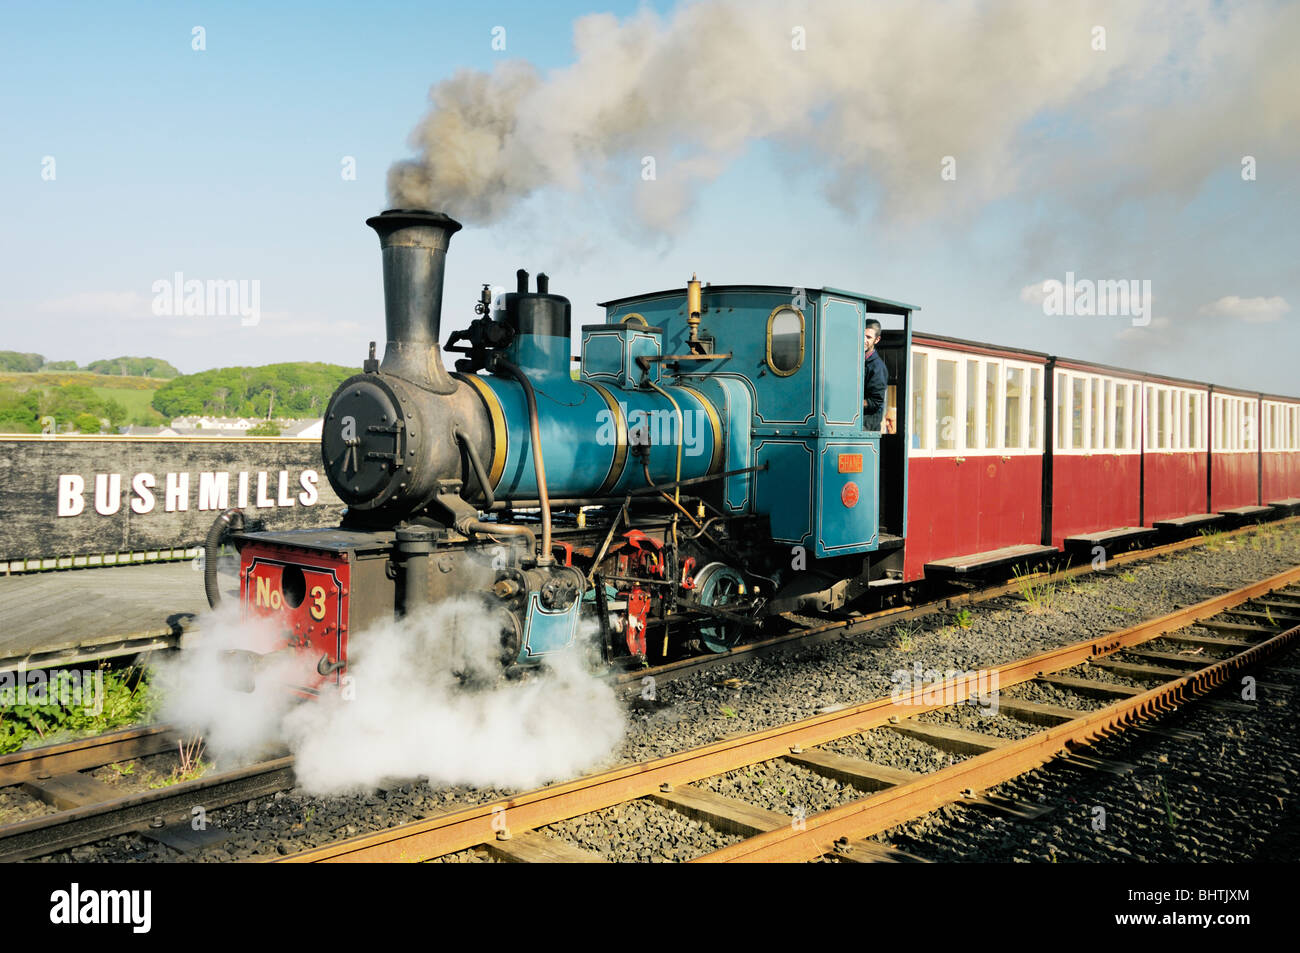 Giants Causeway and Bushmills Railway narrow gauge steam train engine at the Bushmills platform, County Antrim, - Stock Image